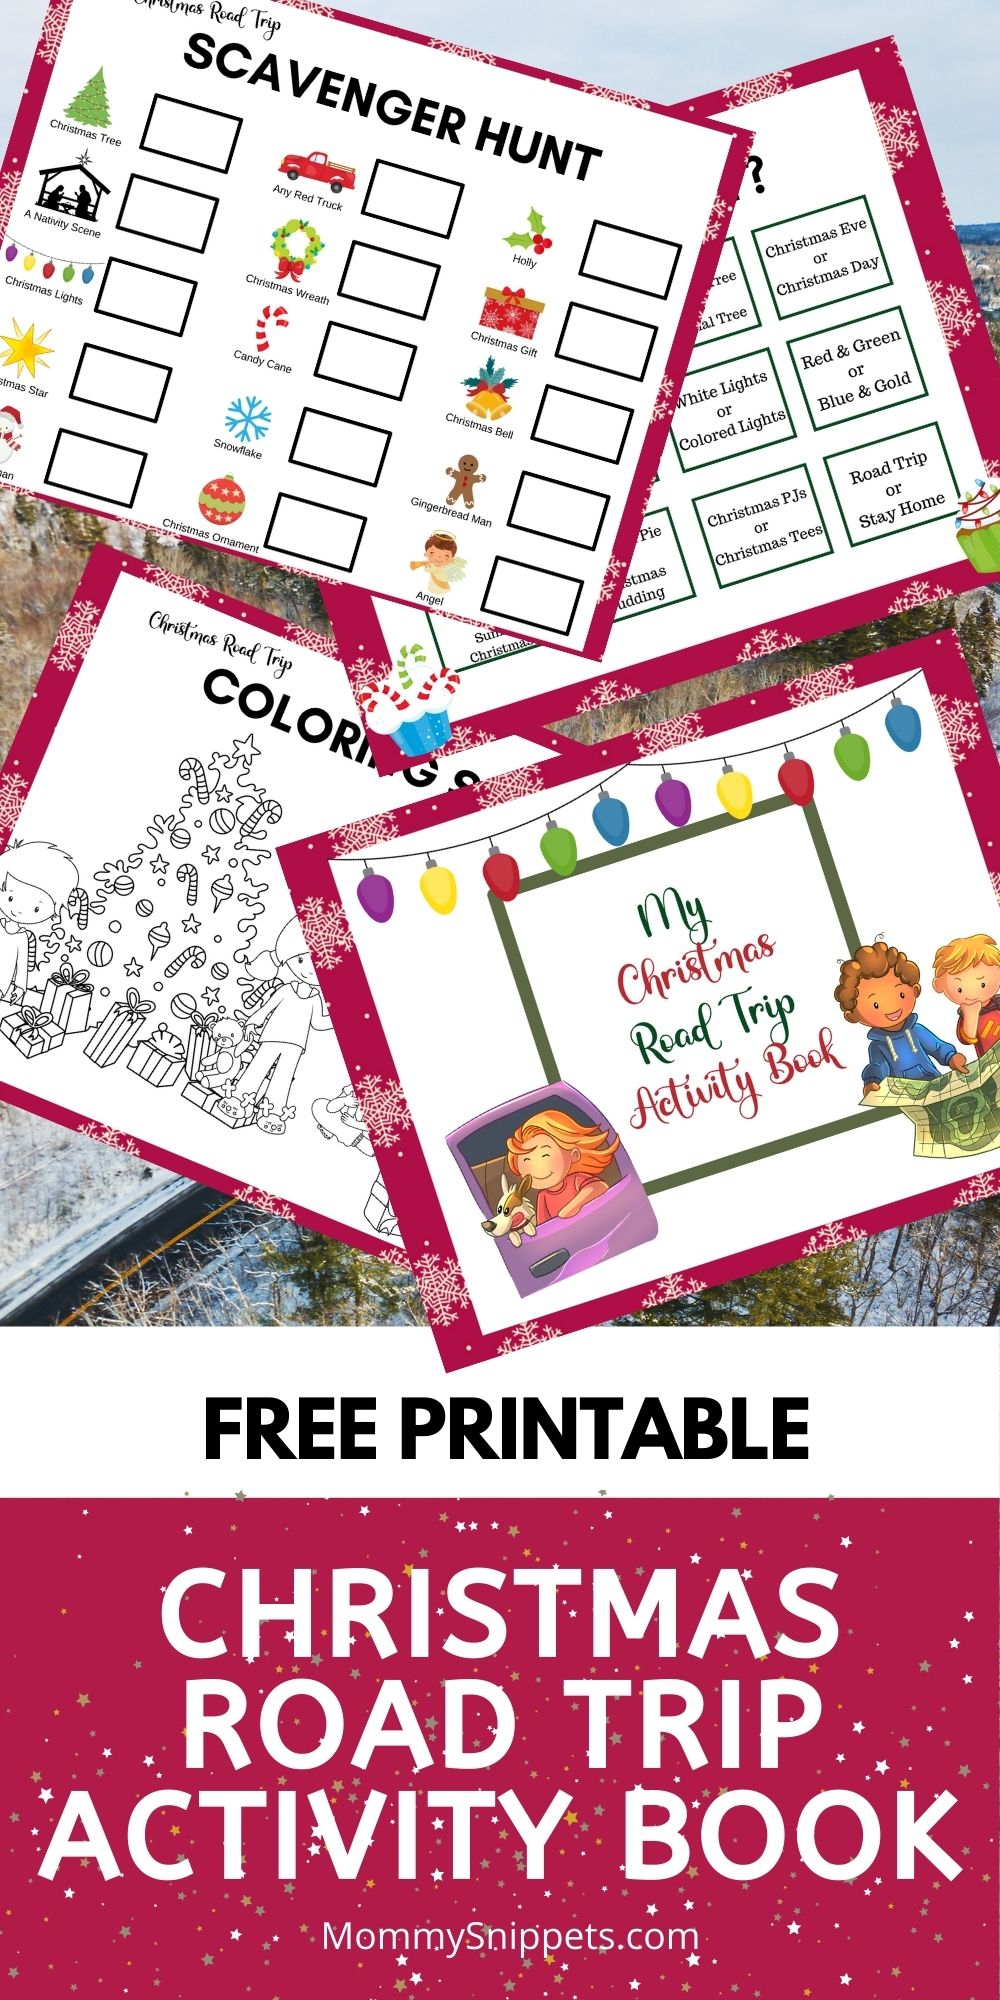 Free Printable Christmas Road Trip Activity Book- MommySnippets.com